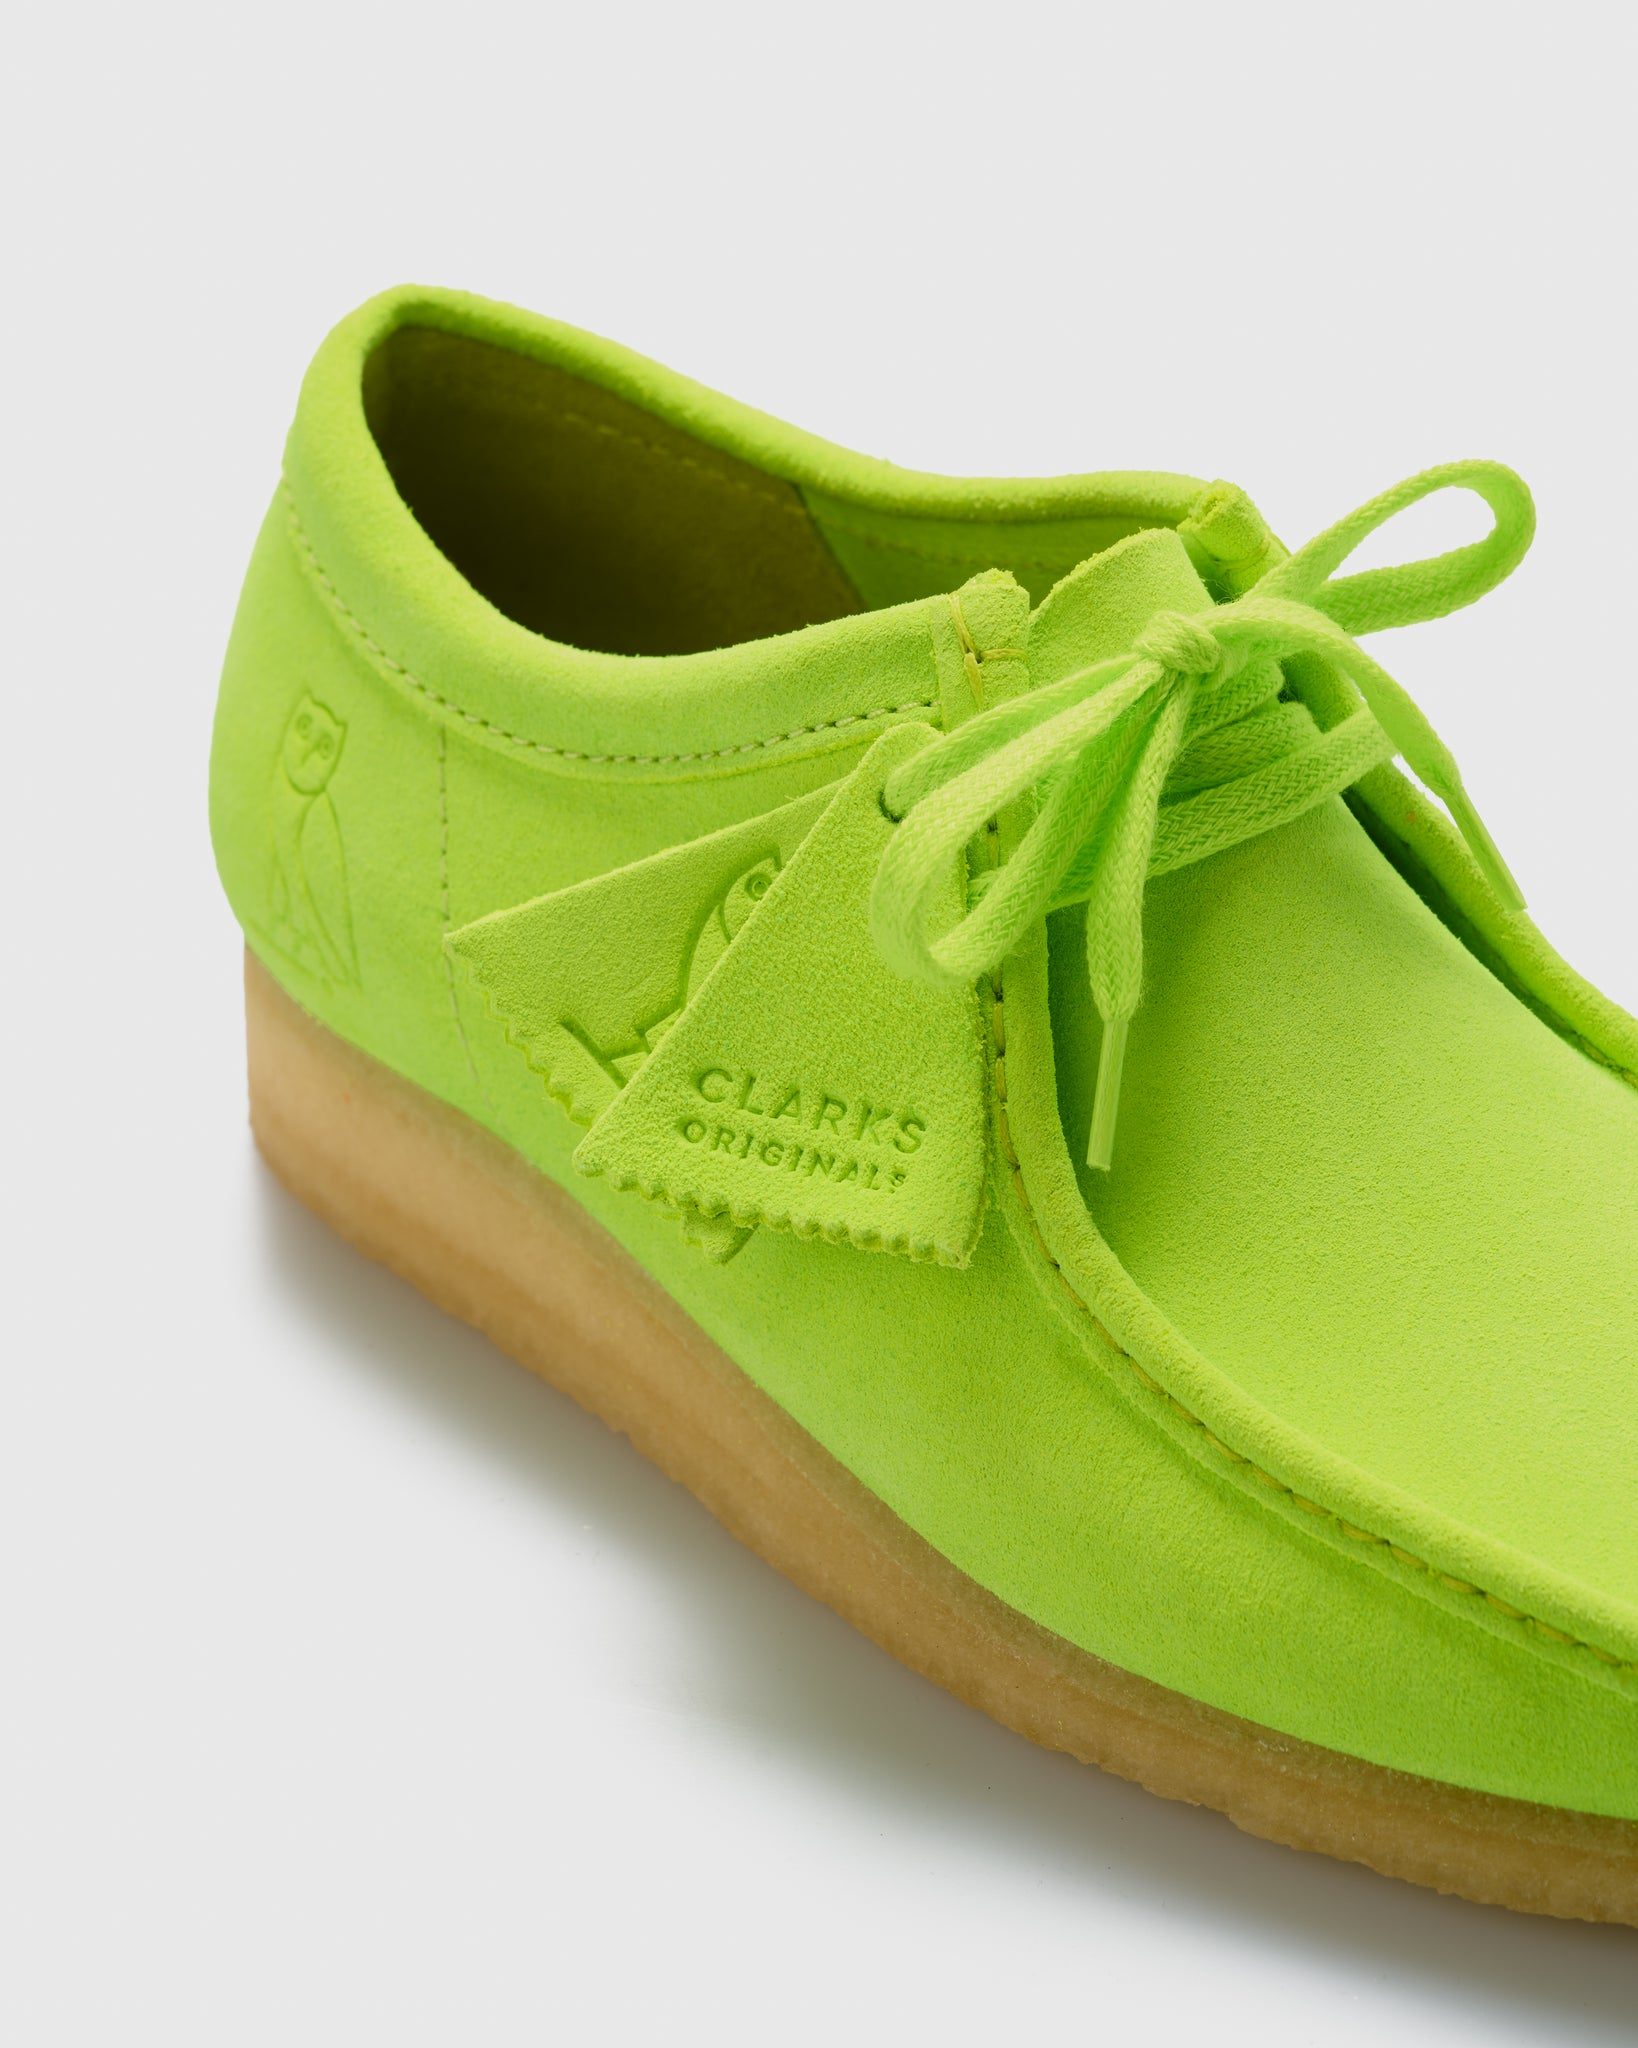 OVO x CLARKS ORIGINALS WALLABEE - LIME IMAGE #3